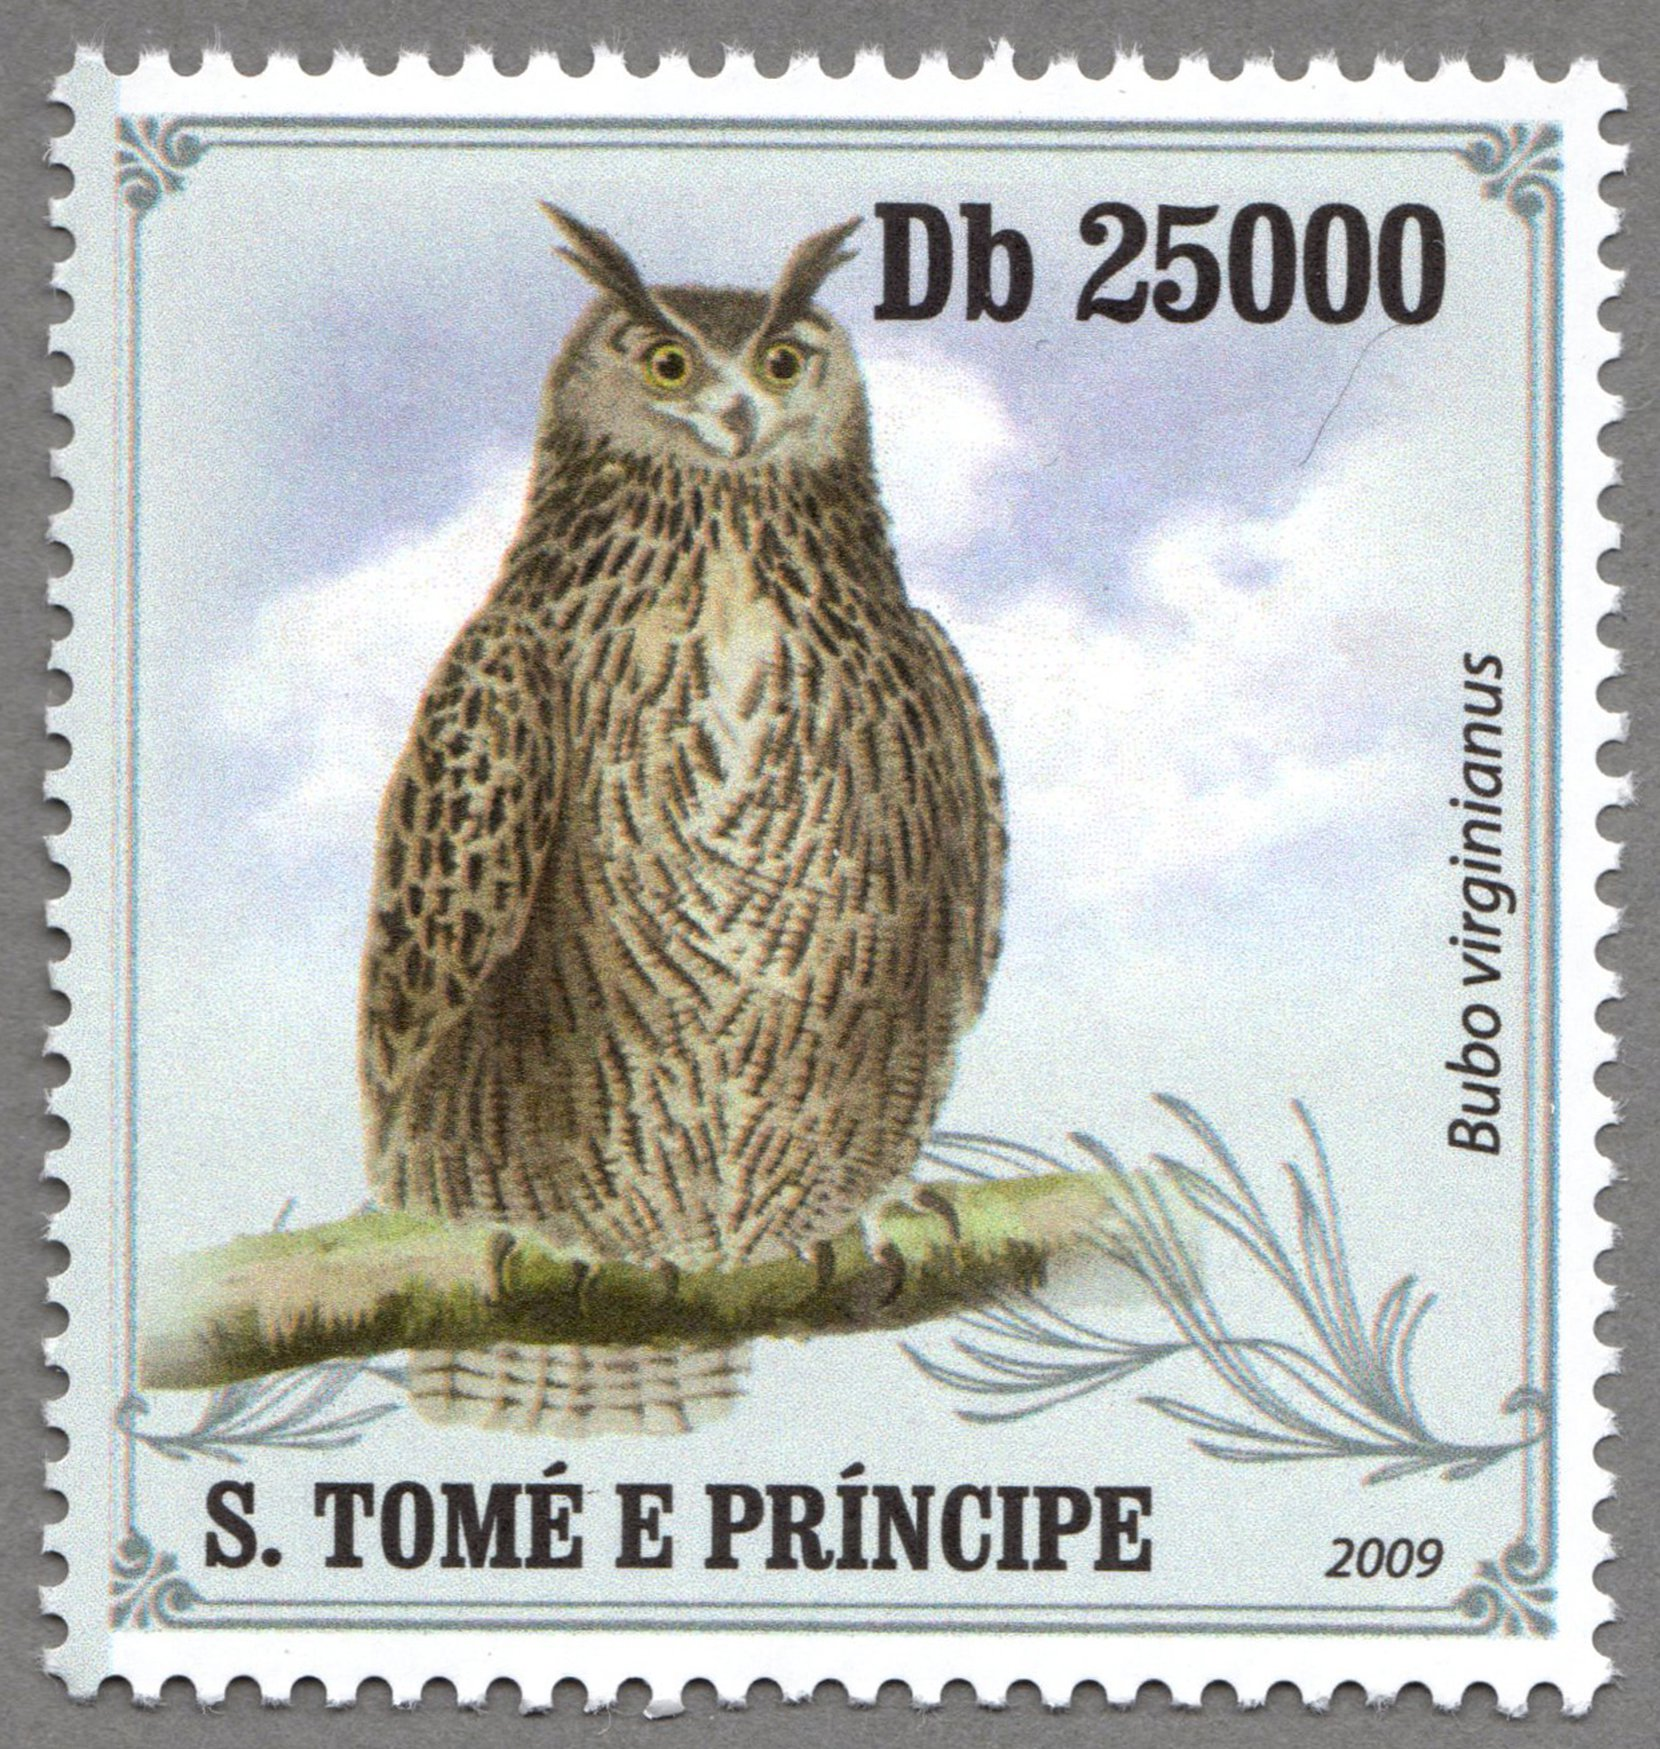 bubo virginianus, s.tome e principe stamp (2) philately postage stamps